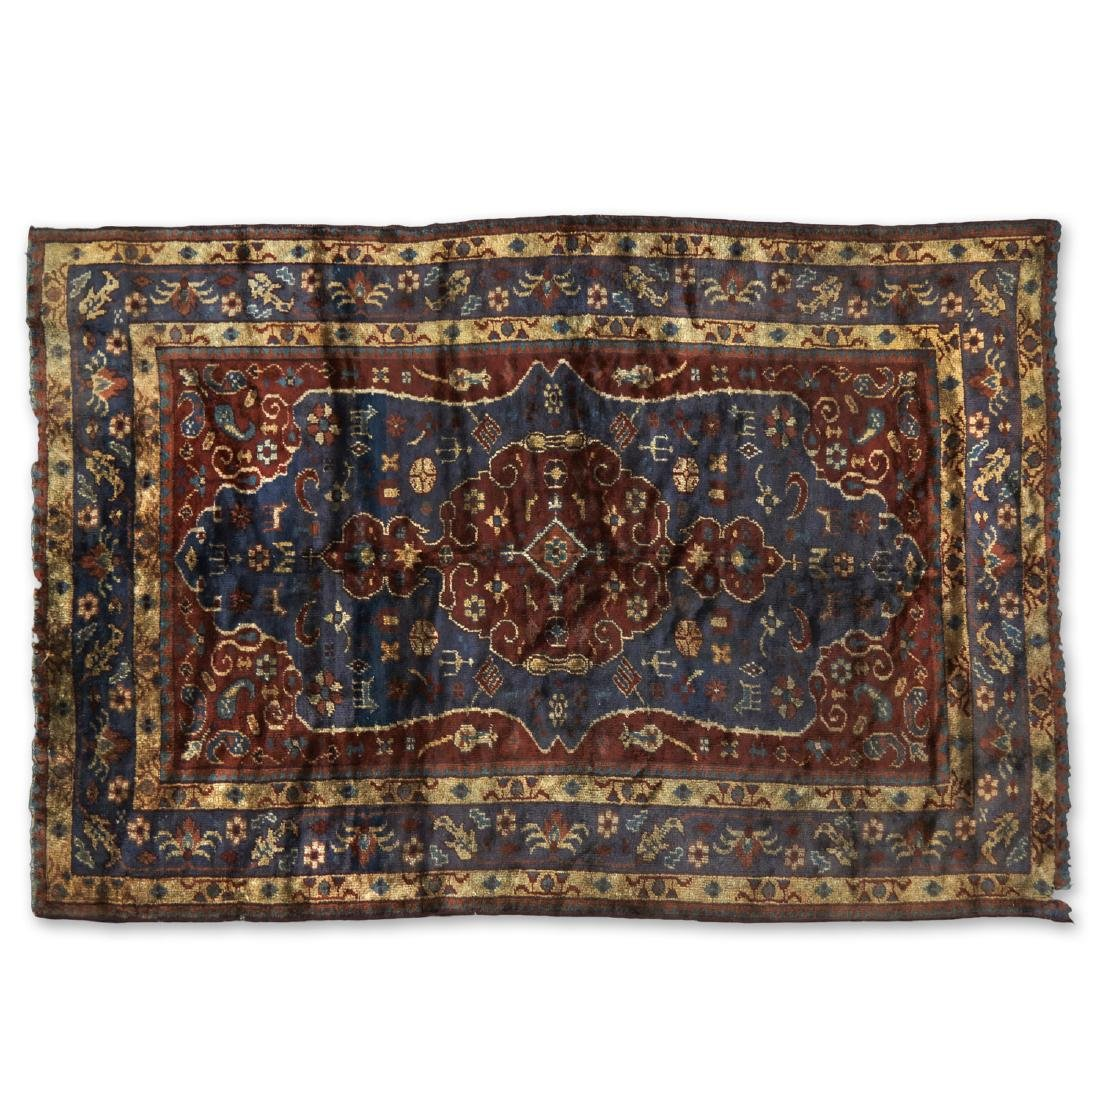 Antique Turkish silk carpet